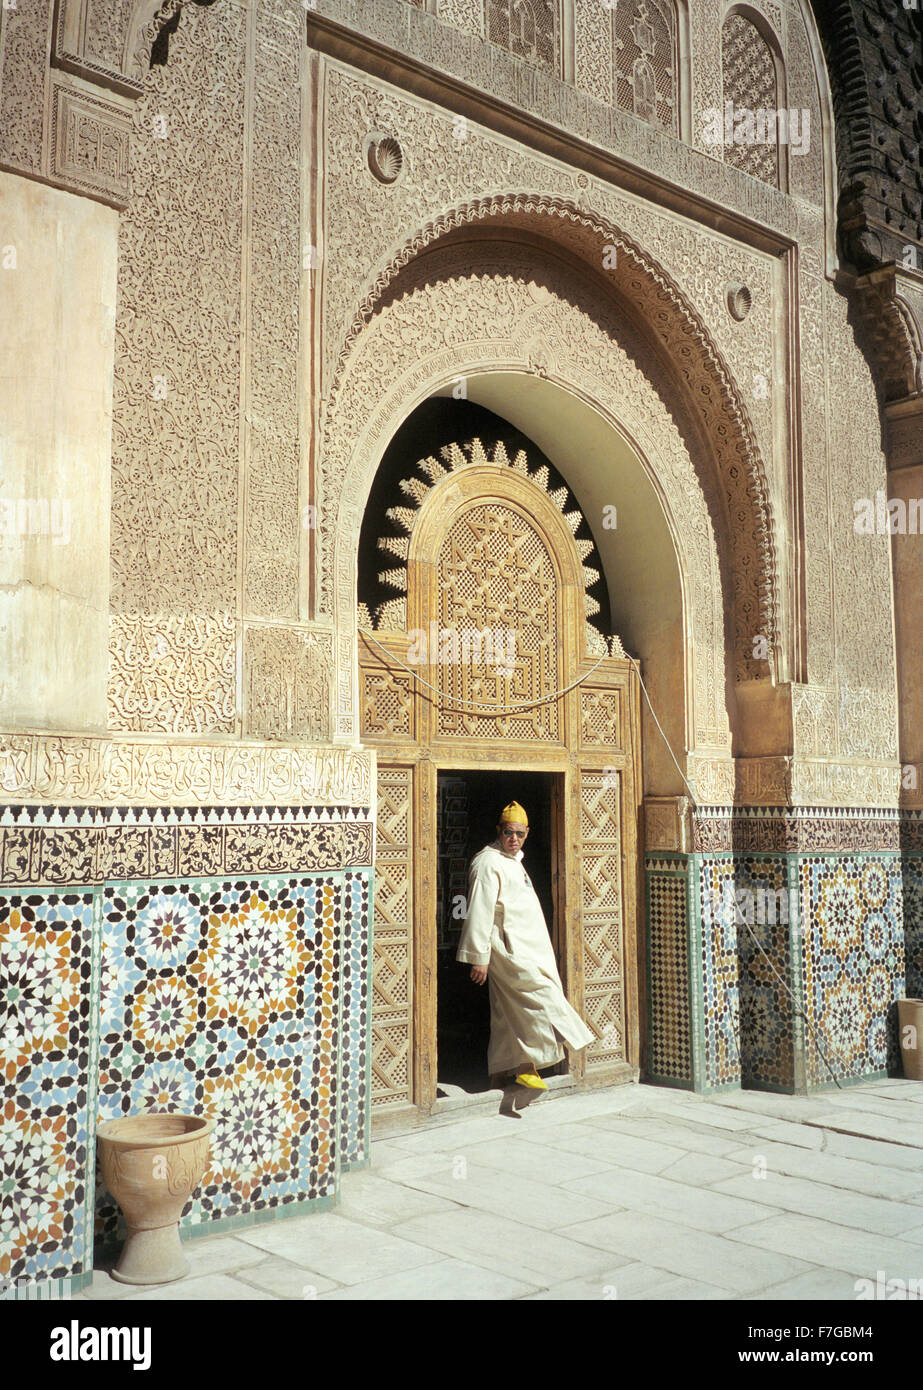 A Muslim Moroccan man steps into the courtyard at Ali ben Youssef Medersa inside the medina at Marrakech, Morocco, - Stock Image